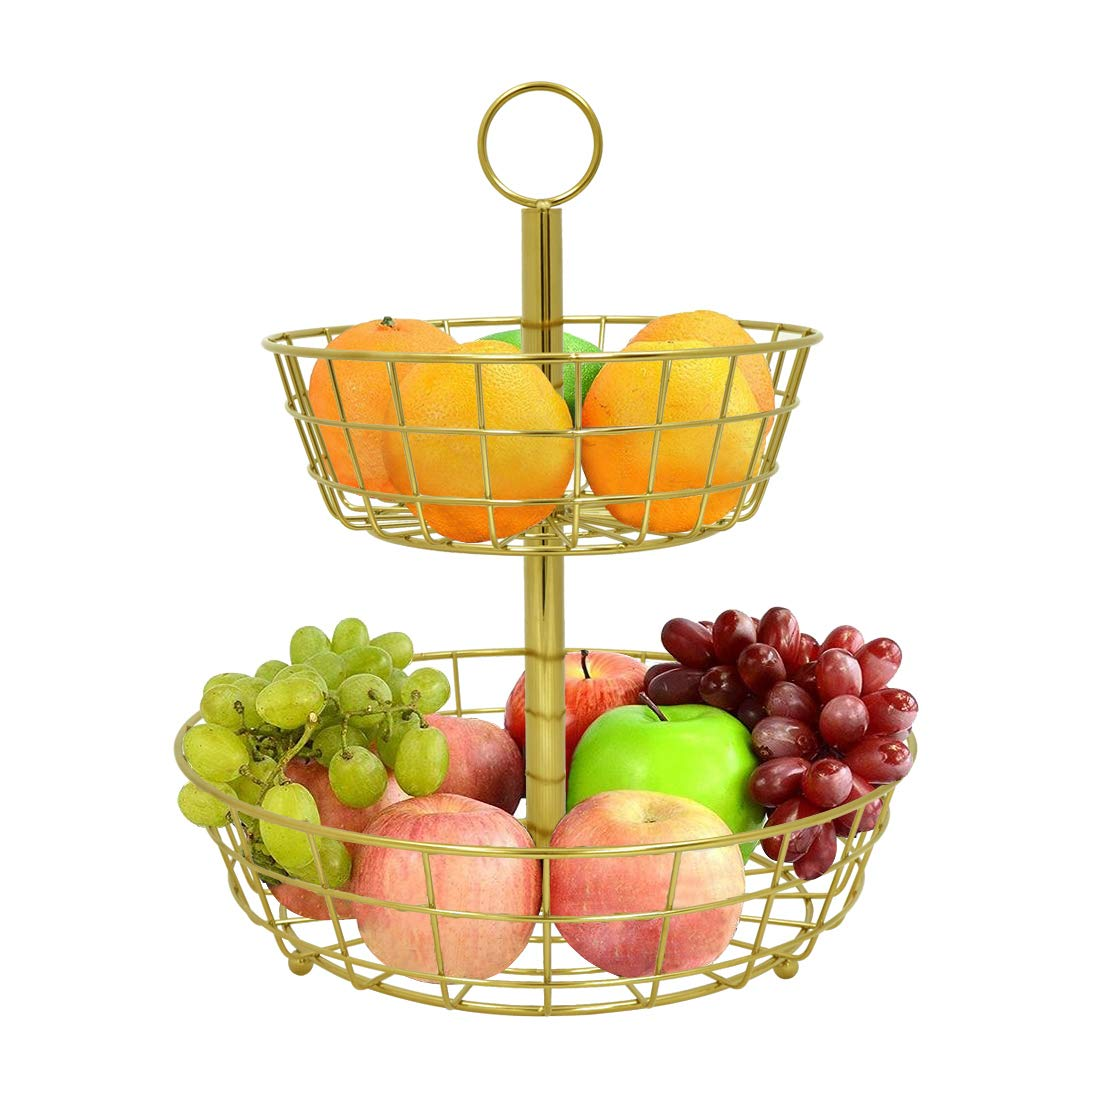 2-Tier Decorative Fruit Basket, Countertop Fruit Bowl Multi Purpose Storage Basket for Vegetable,Bread, Snacks, Households Items Storage,Gold